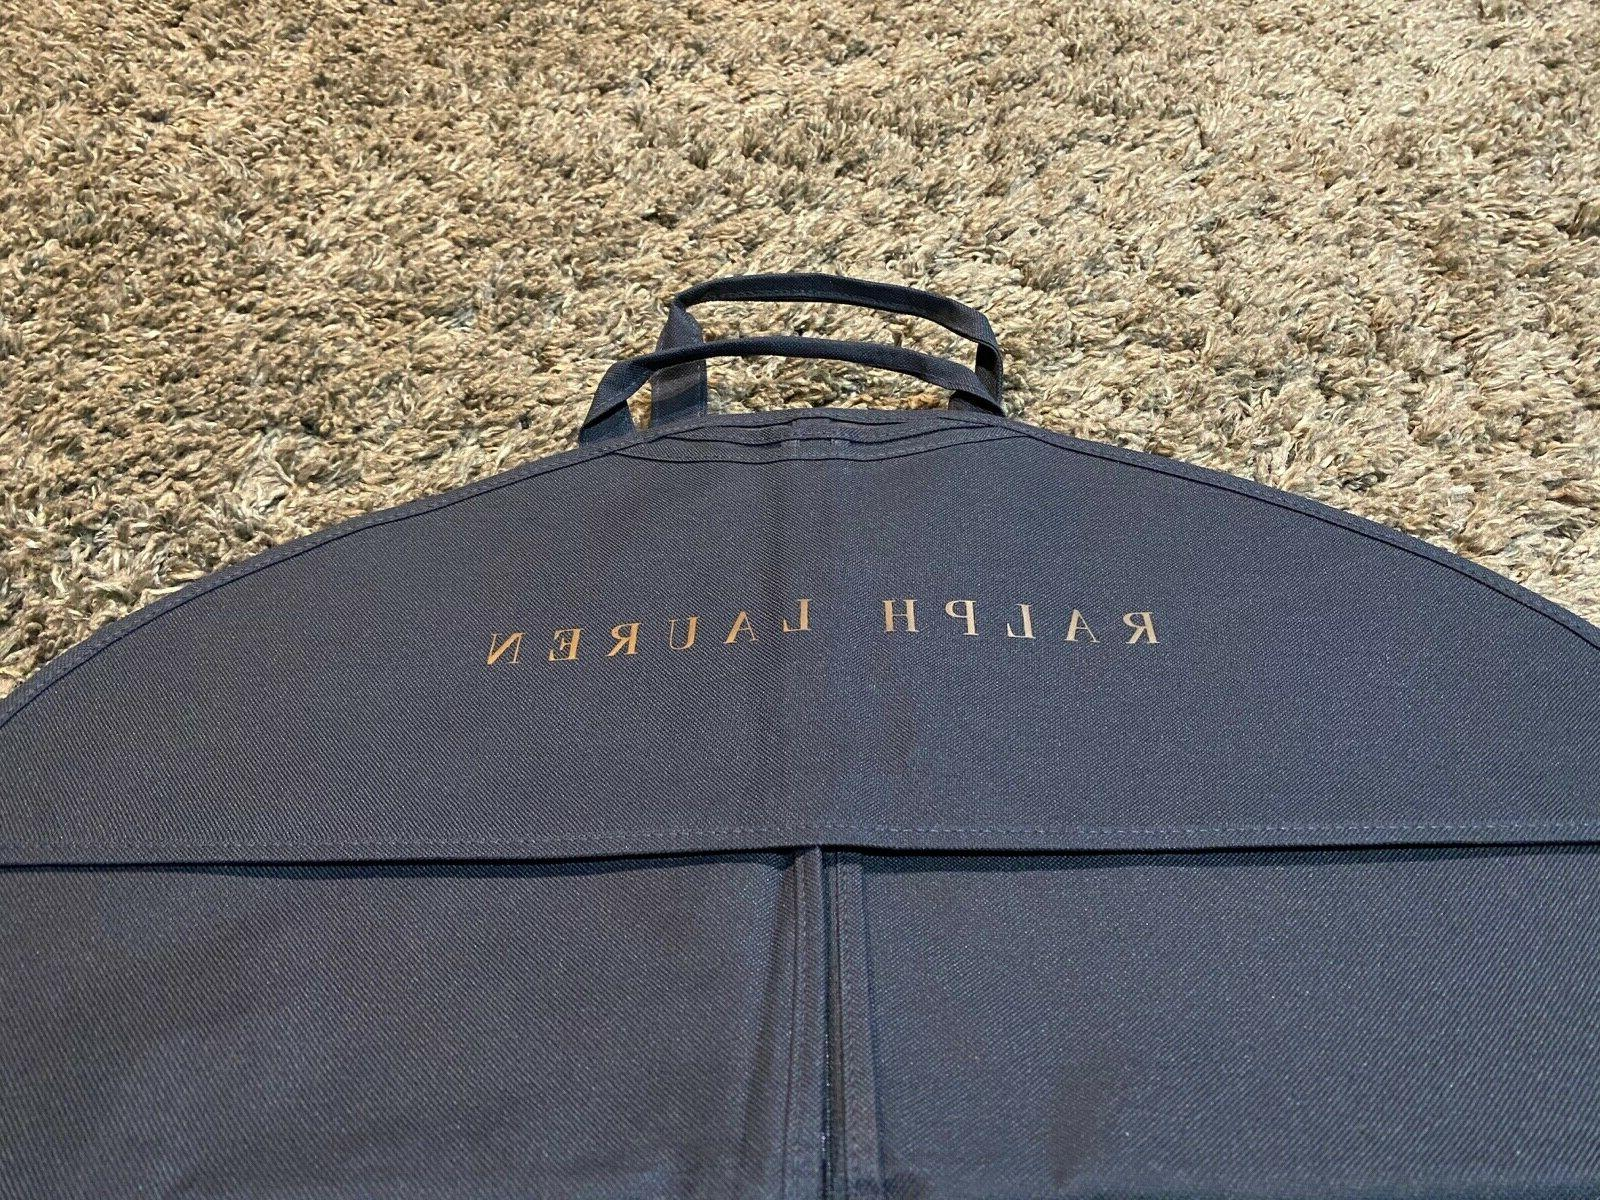 Polo gold large bag luggage carry on